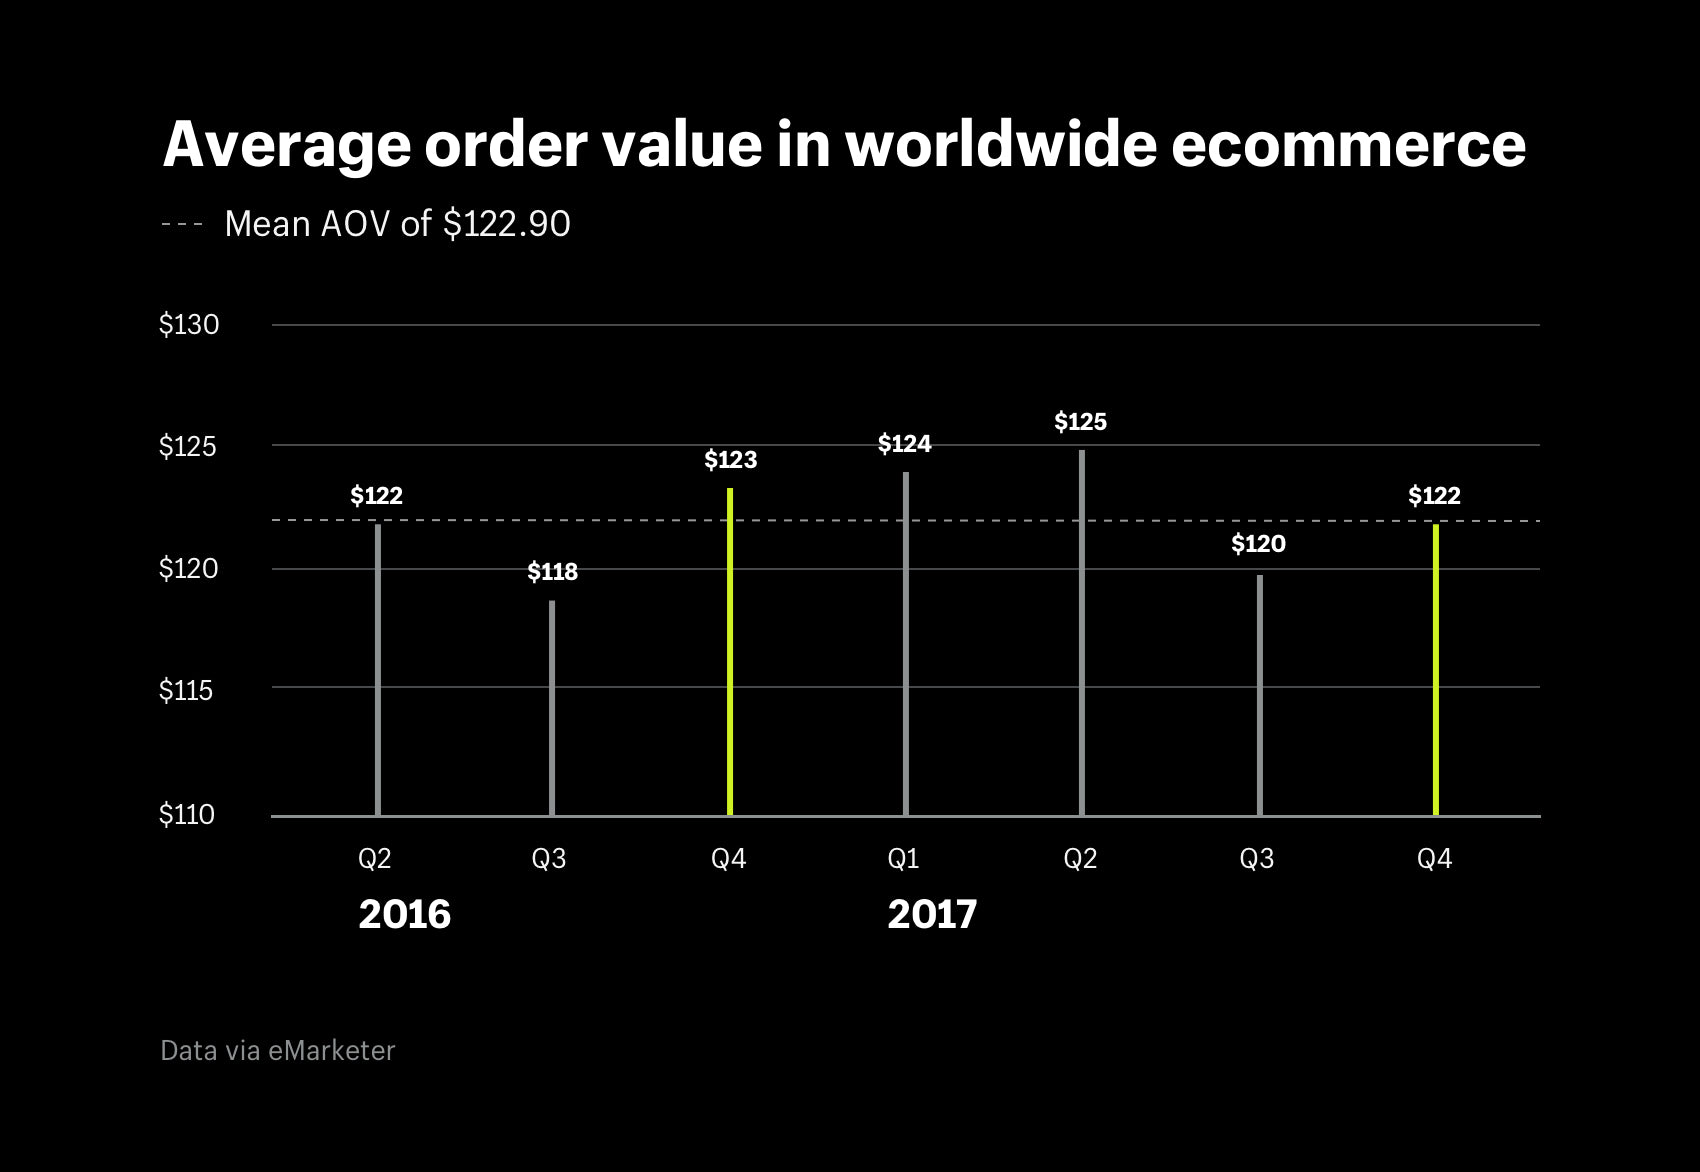 Average order value in worldwide ecommerce QoQ